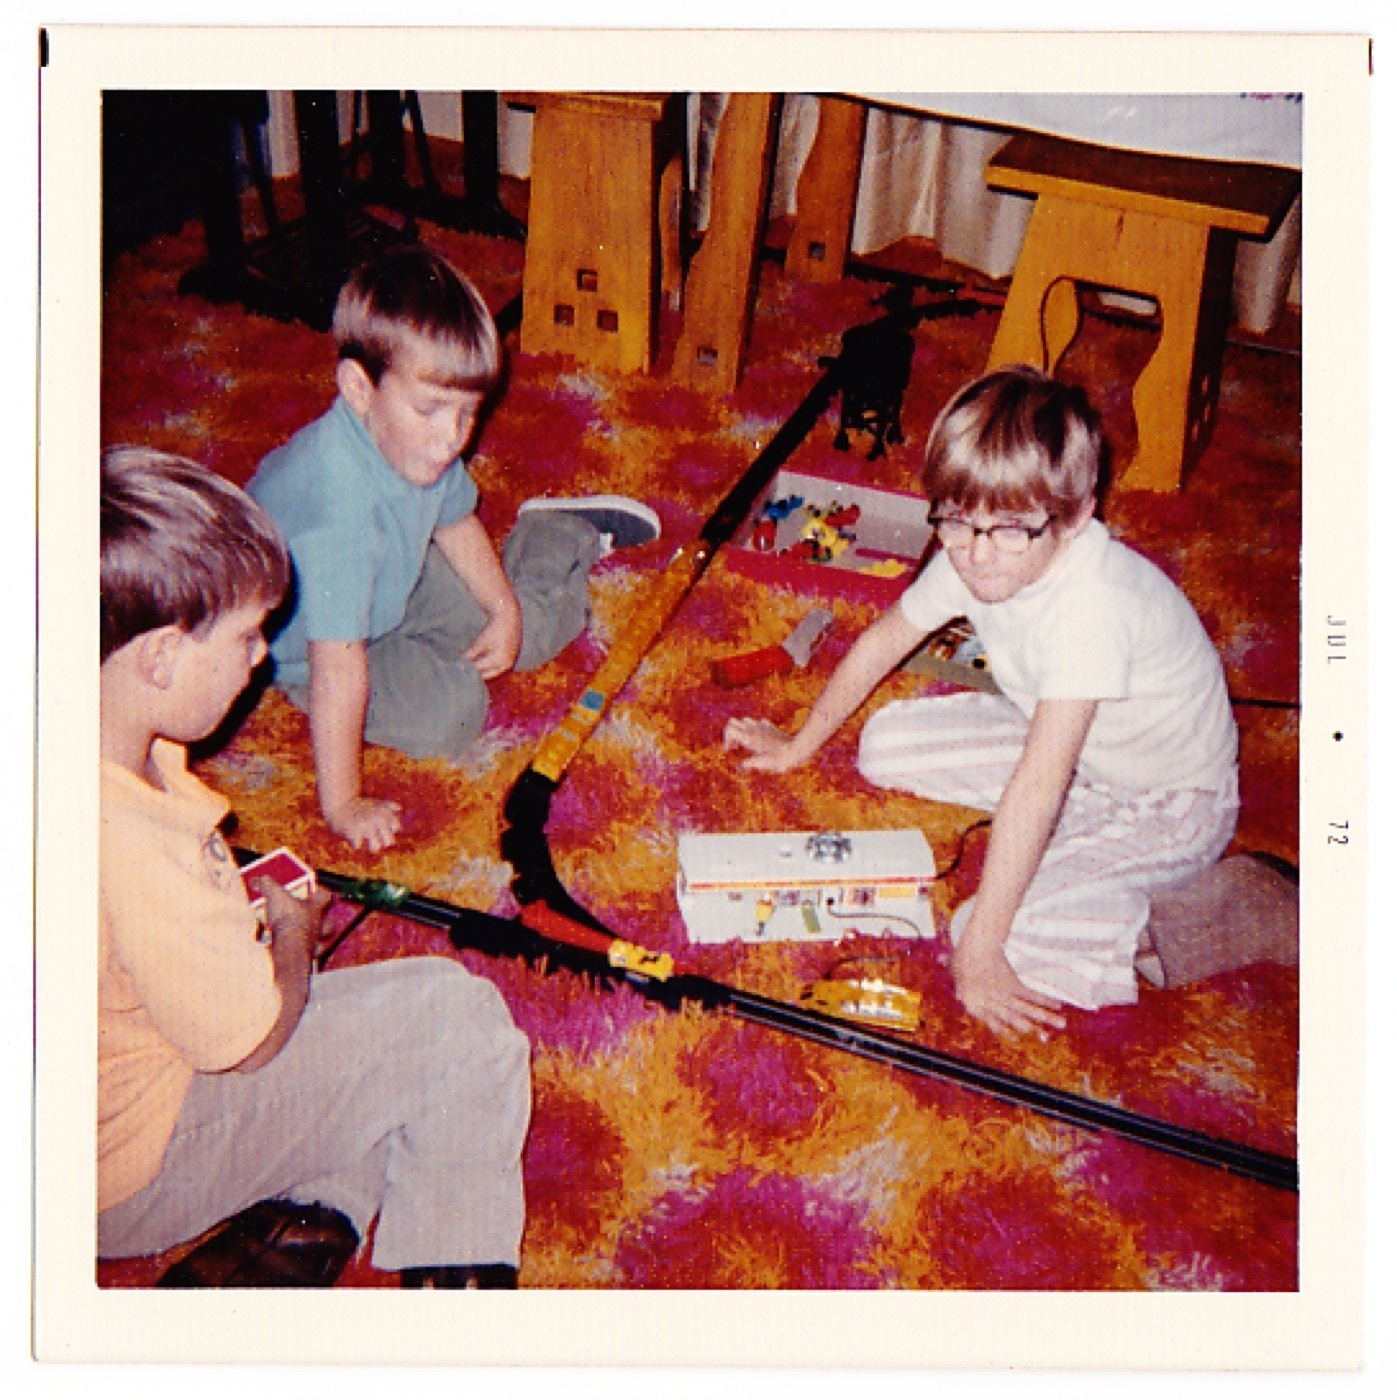 Kids Playing On Psychedelic Shag Carpet 1972 2 Warps To